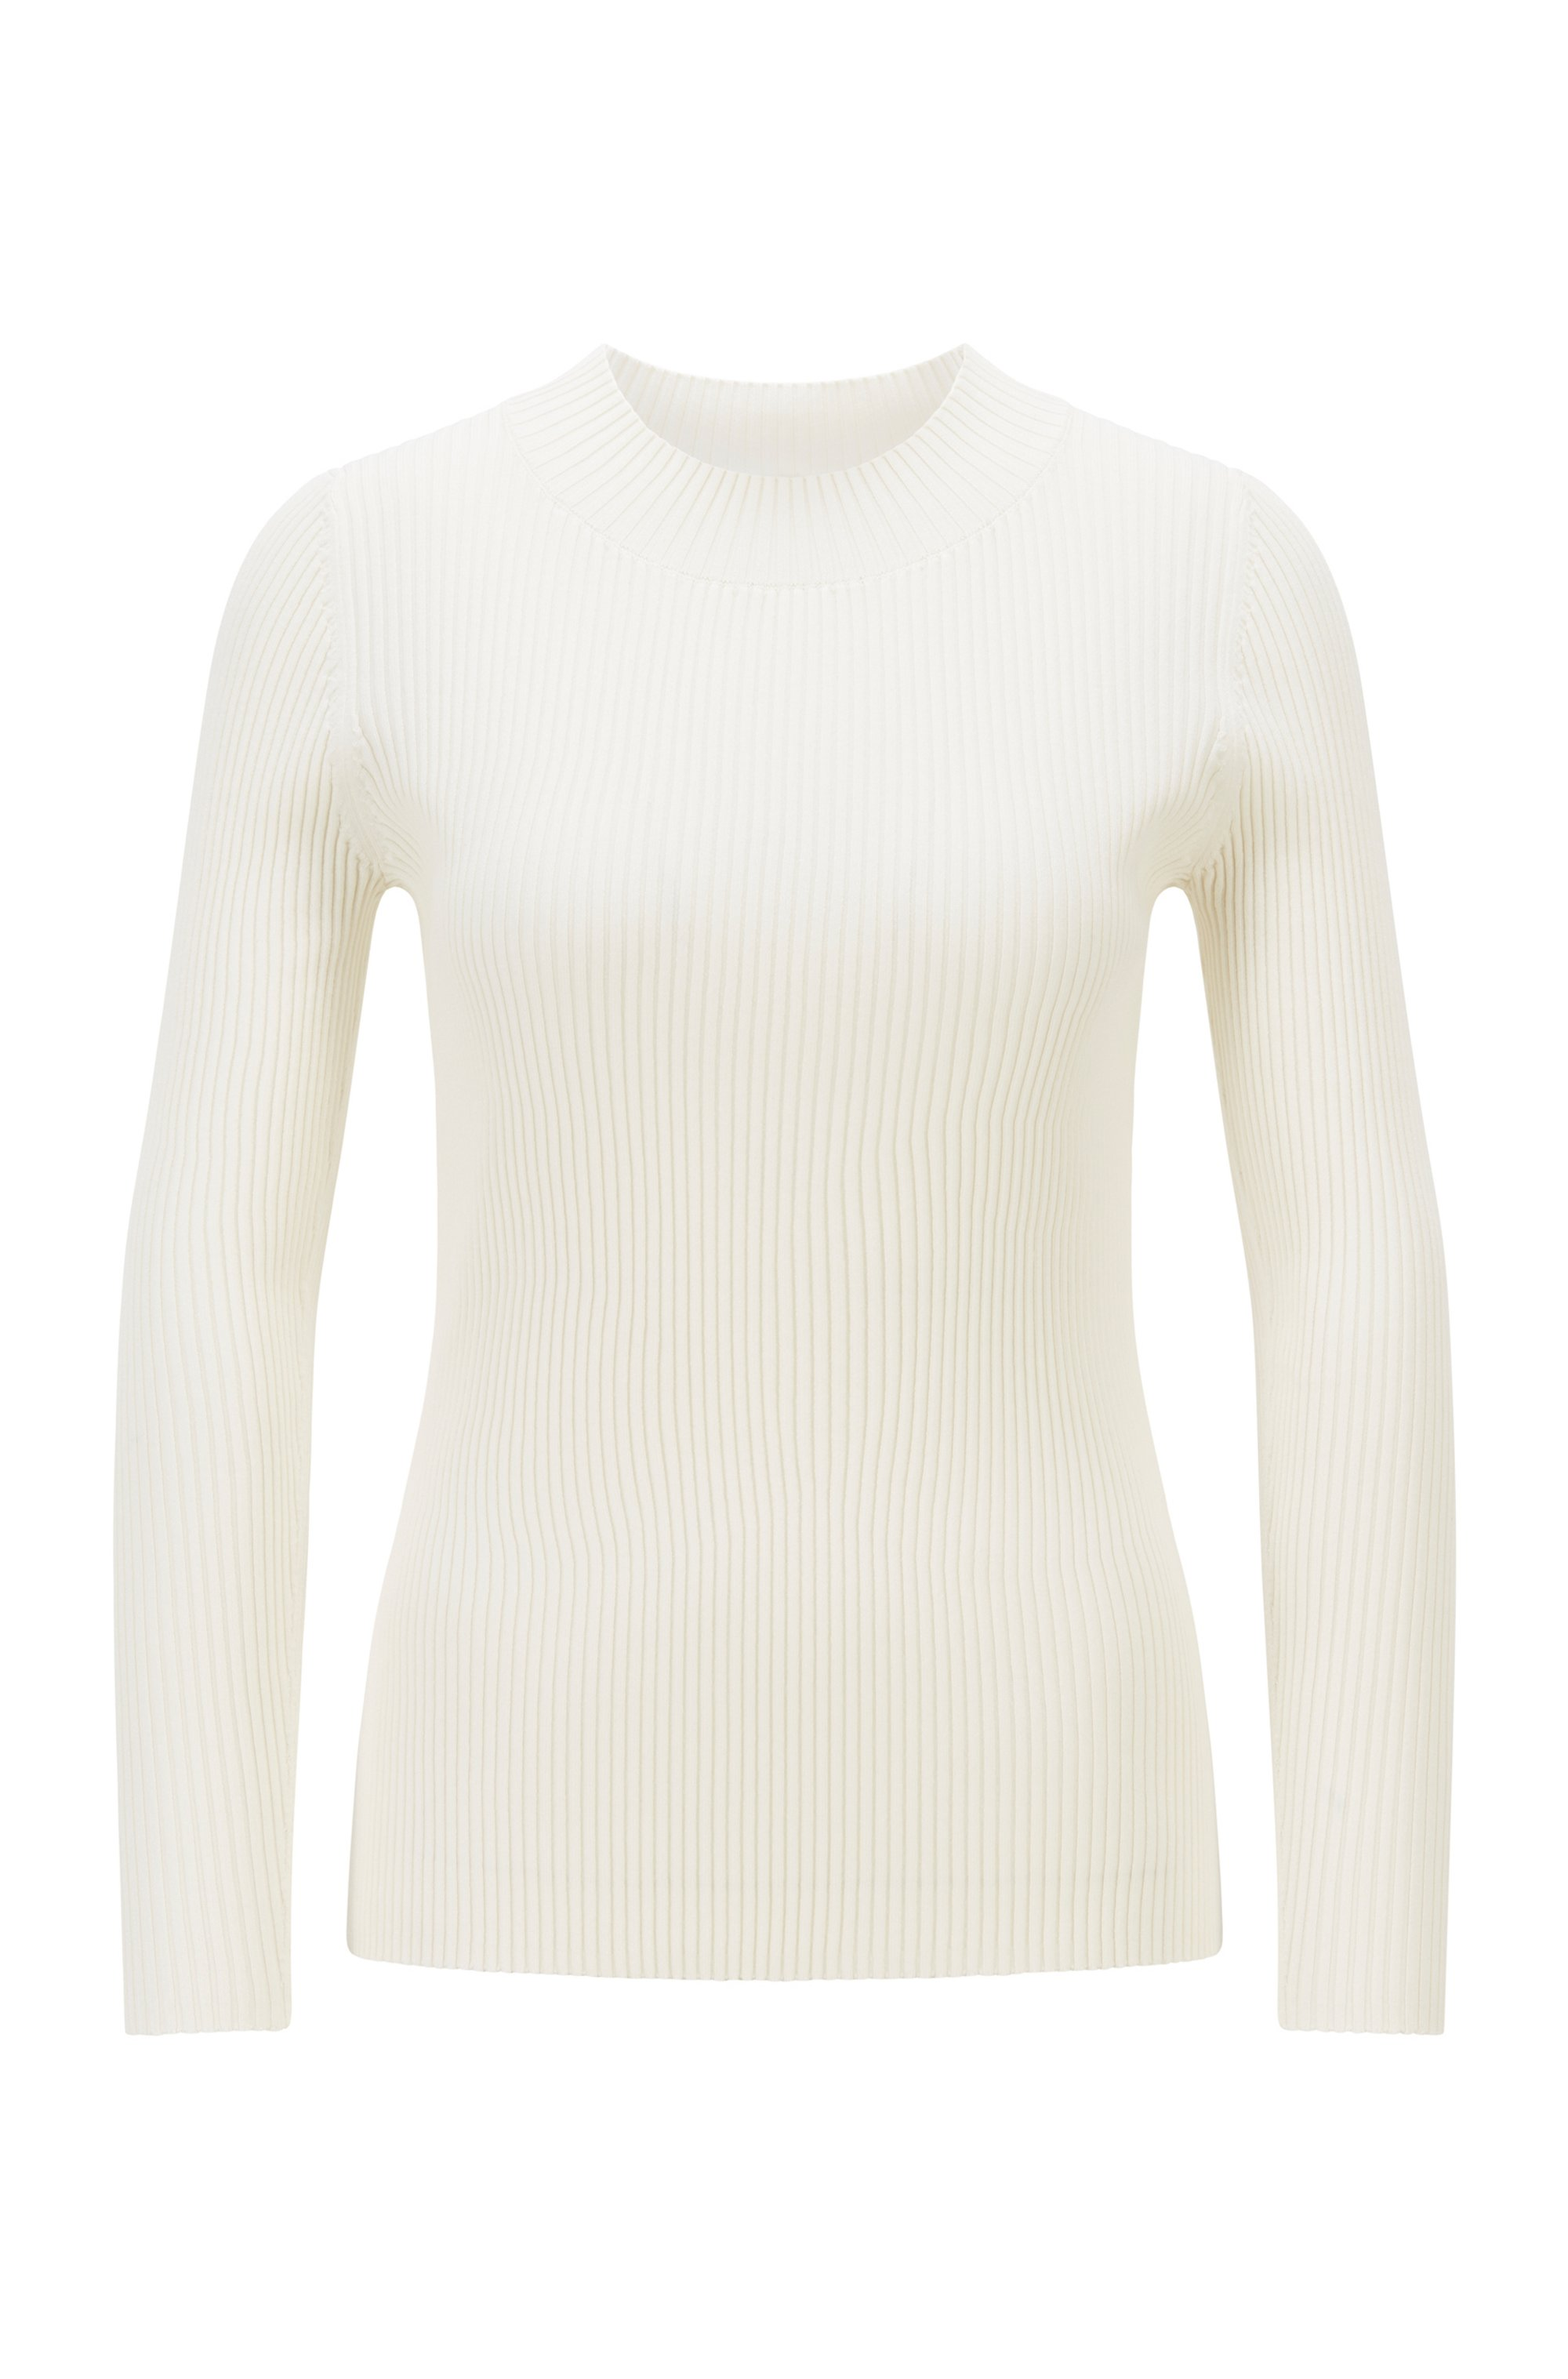 Ribbed slim-fit sweater with cutout back detail, White